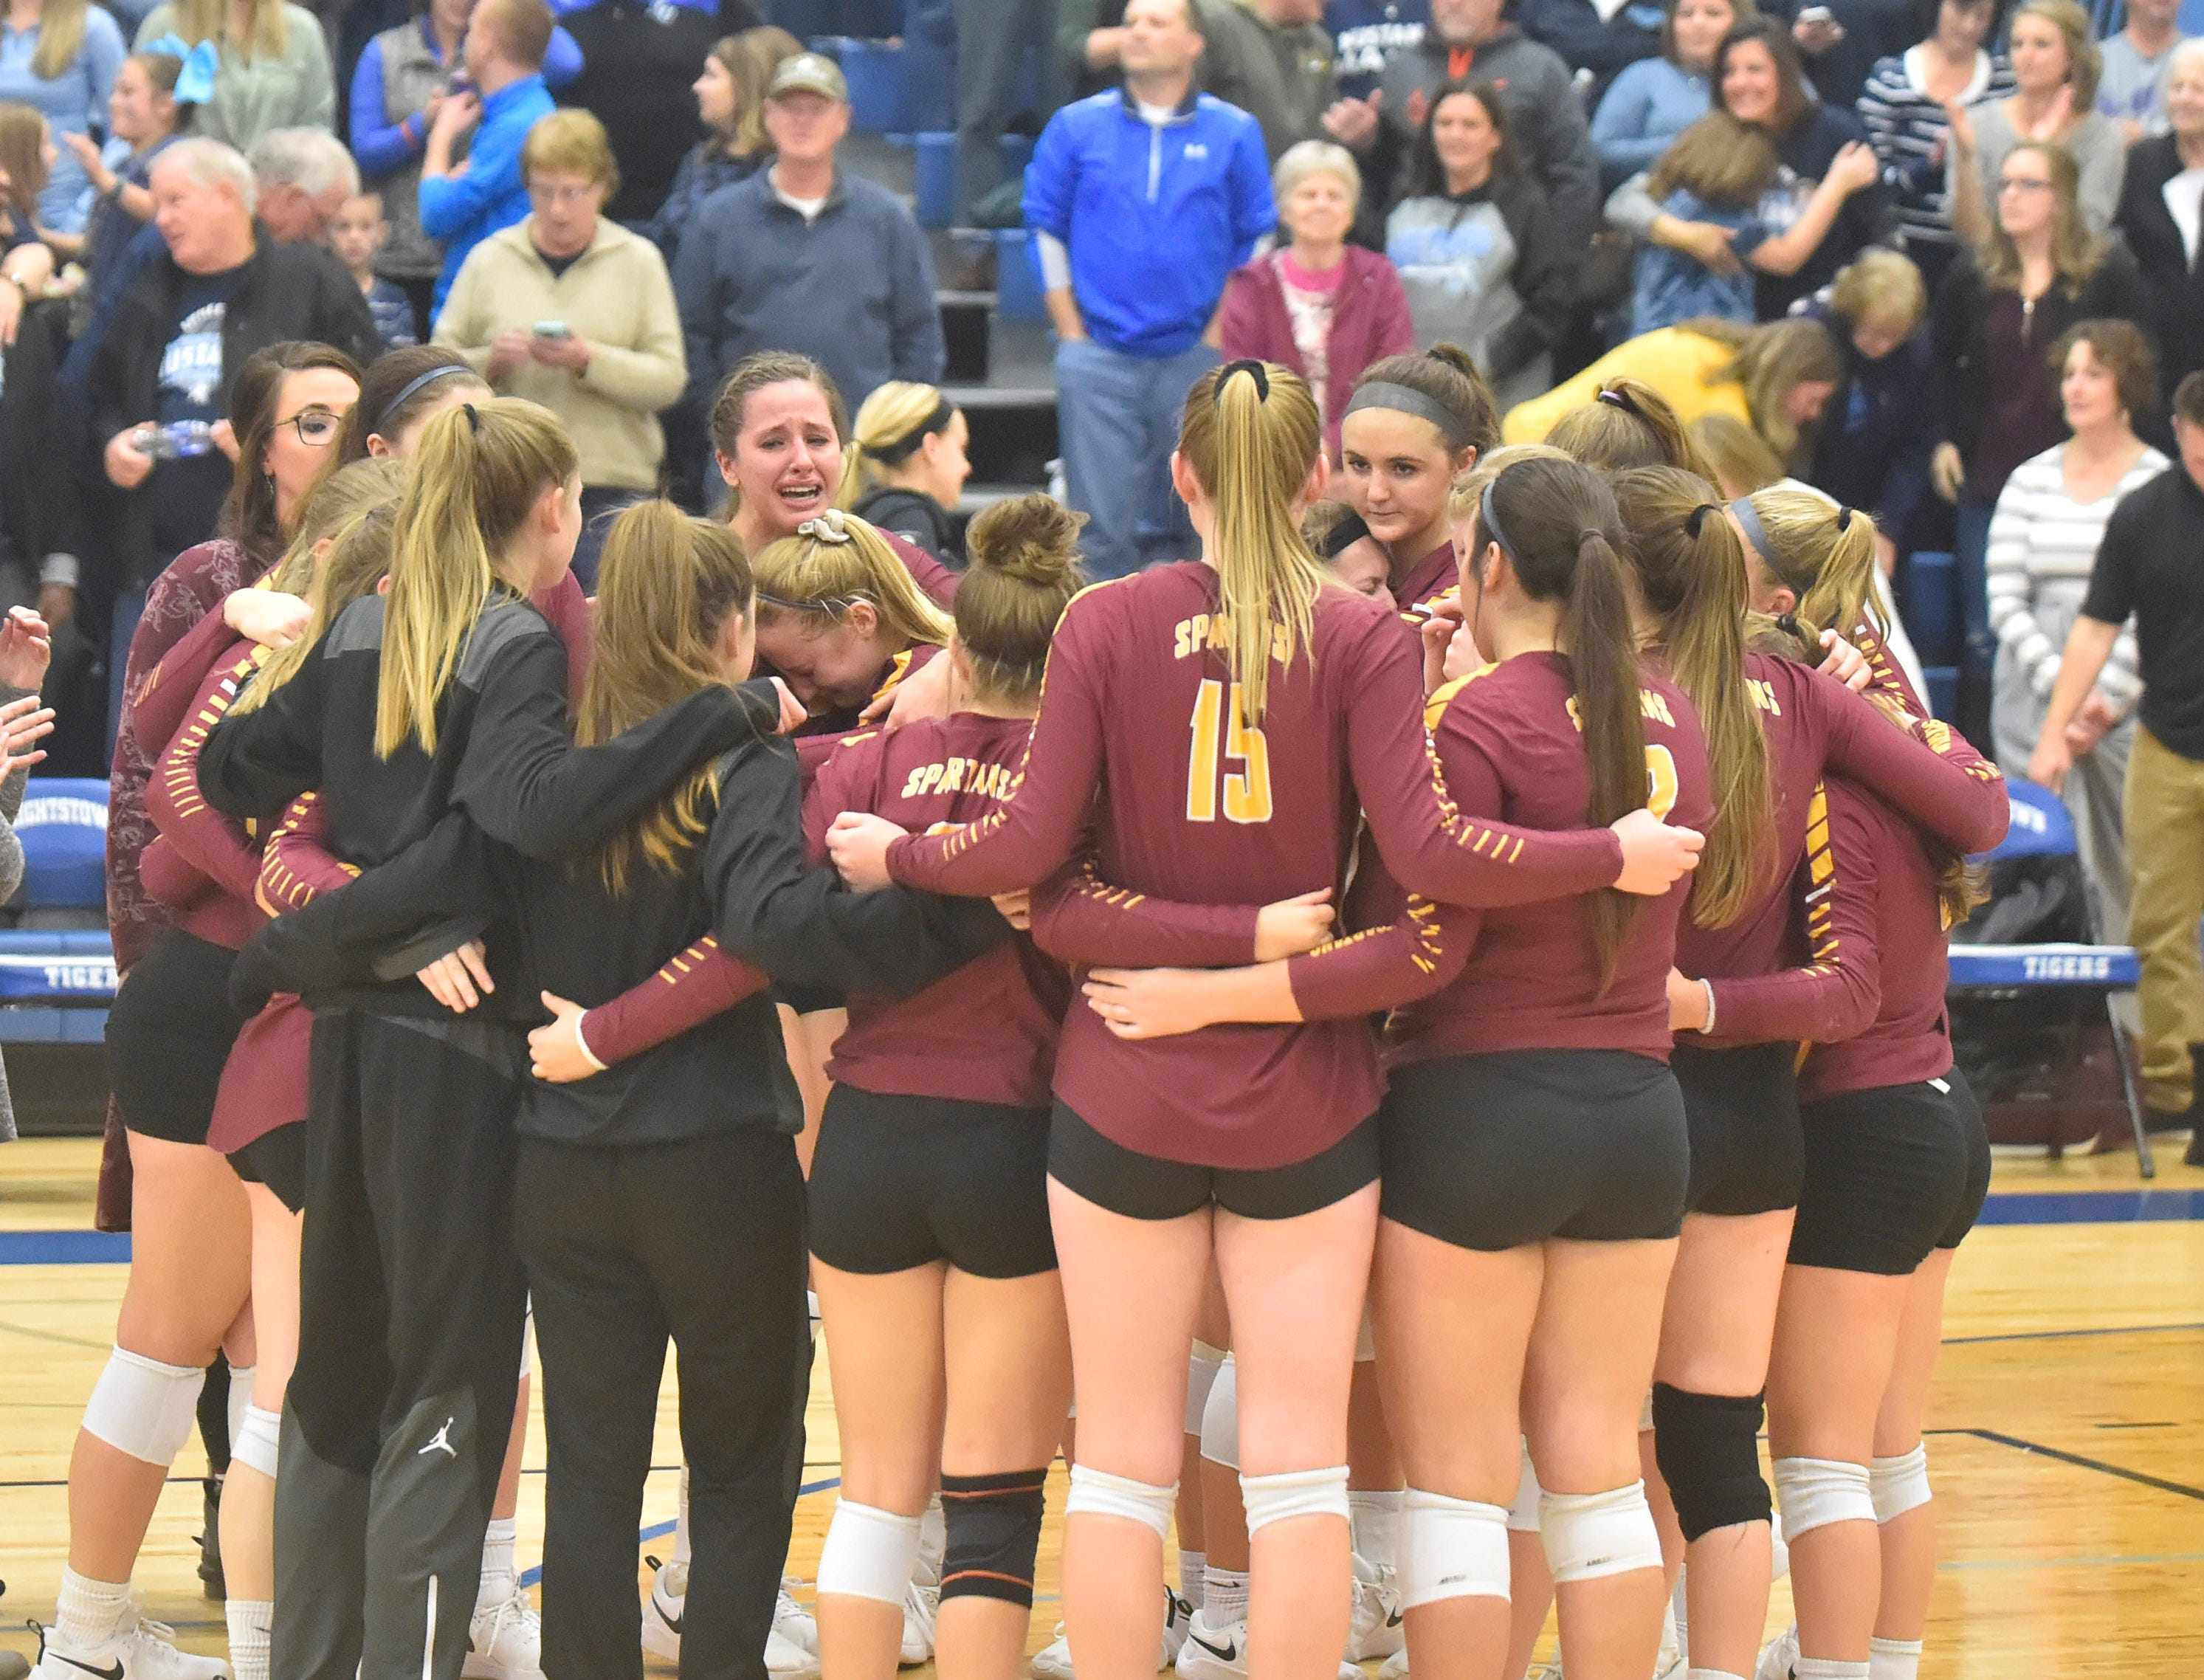 Luxemburg-Casco hearts are heavy after losing to Little Chute at the WIAA Division 2 sectional final n Oct. 27, 2018, in Wrightstown. Tina M. Gohr/USA TODAY NETWORK-Wisconsin